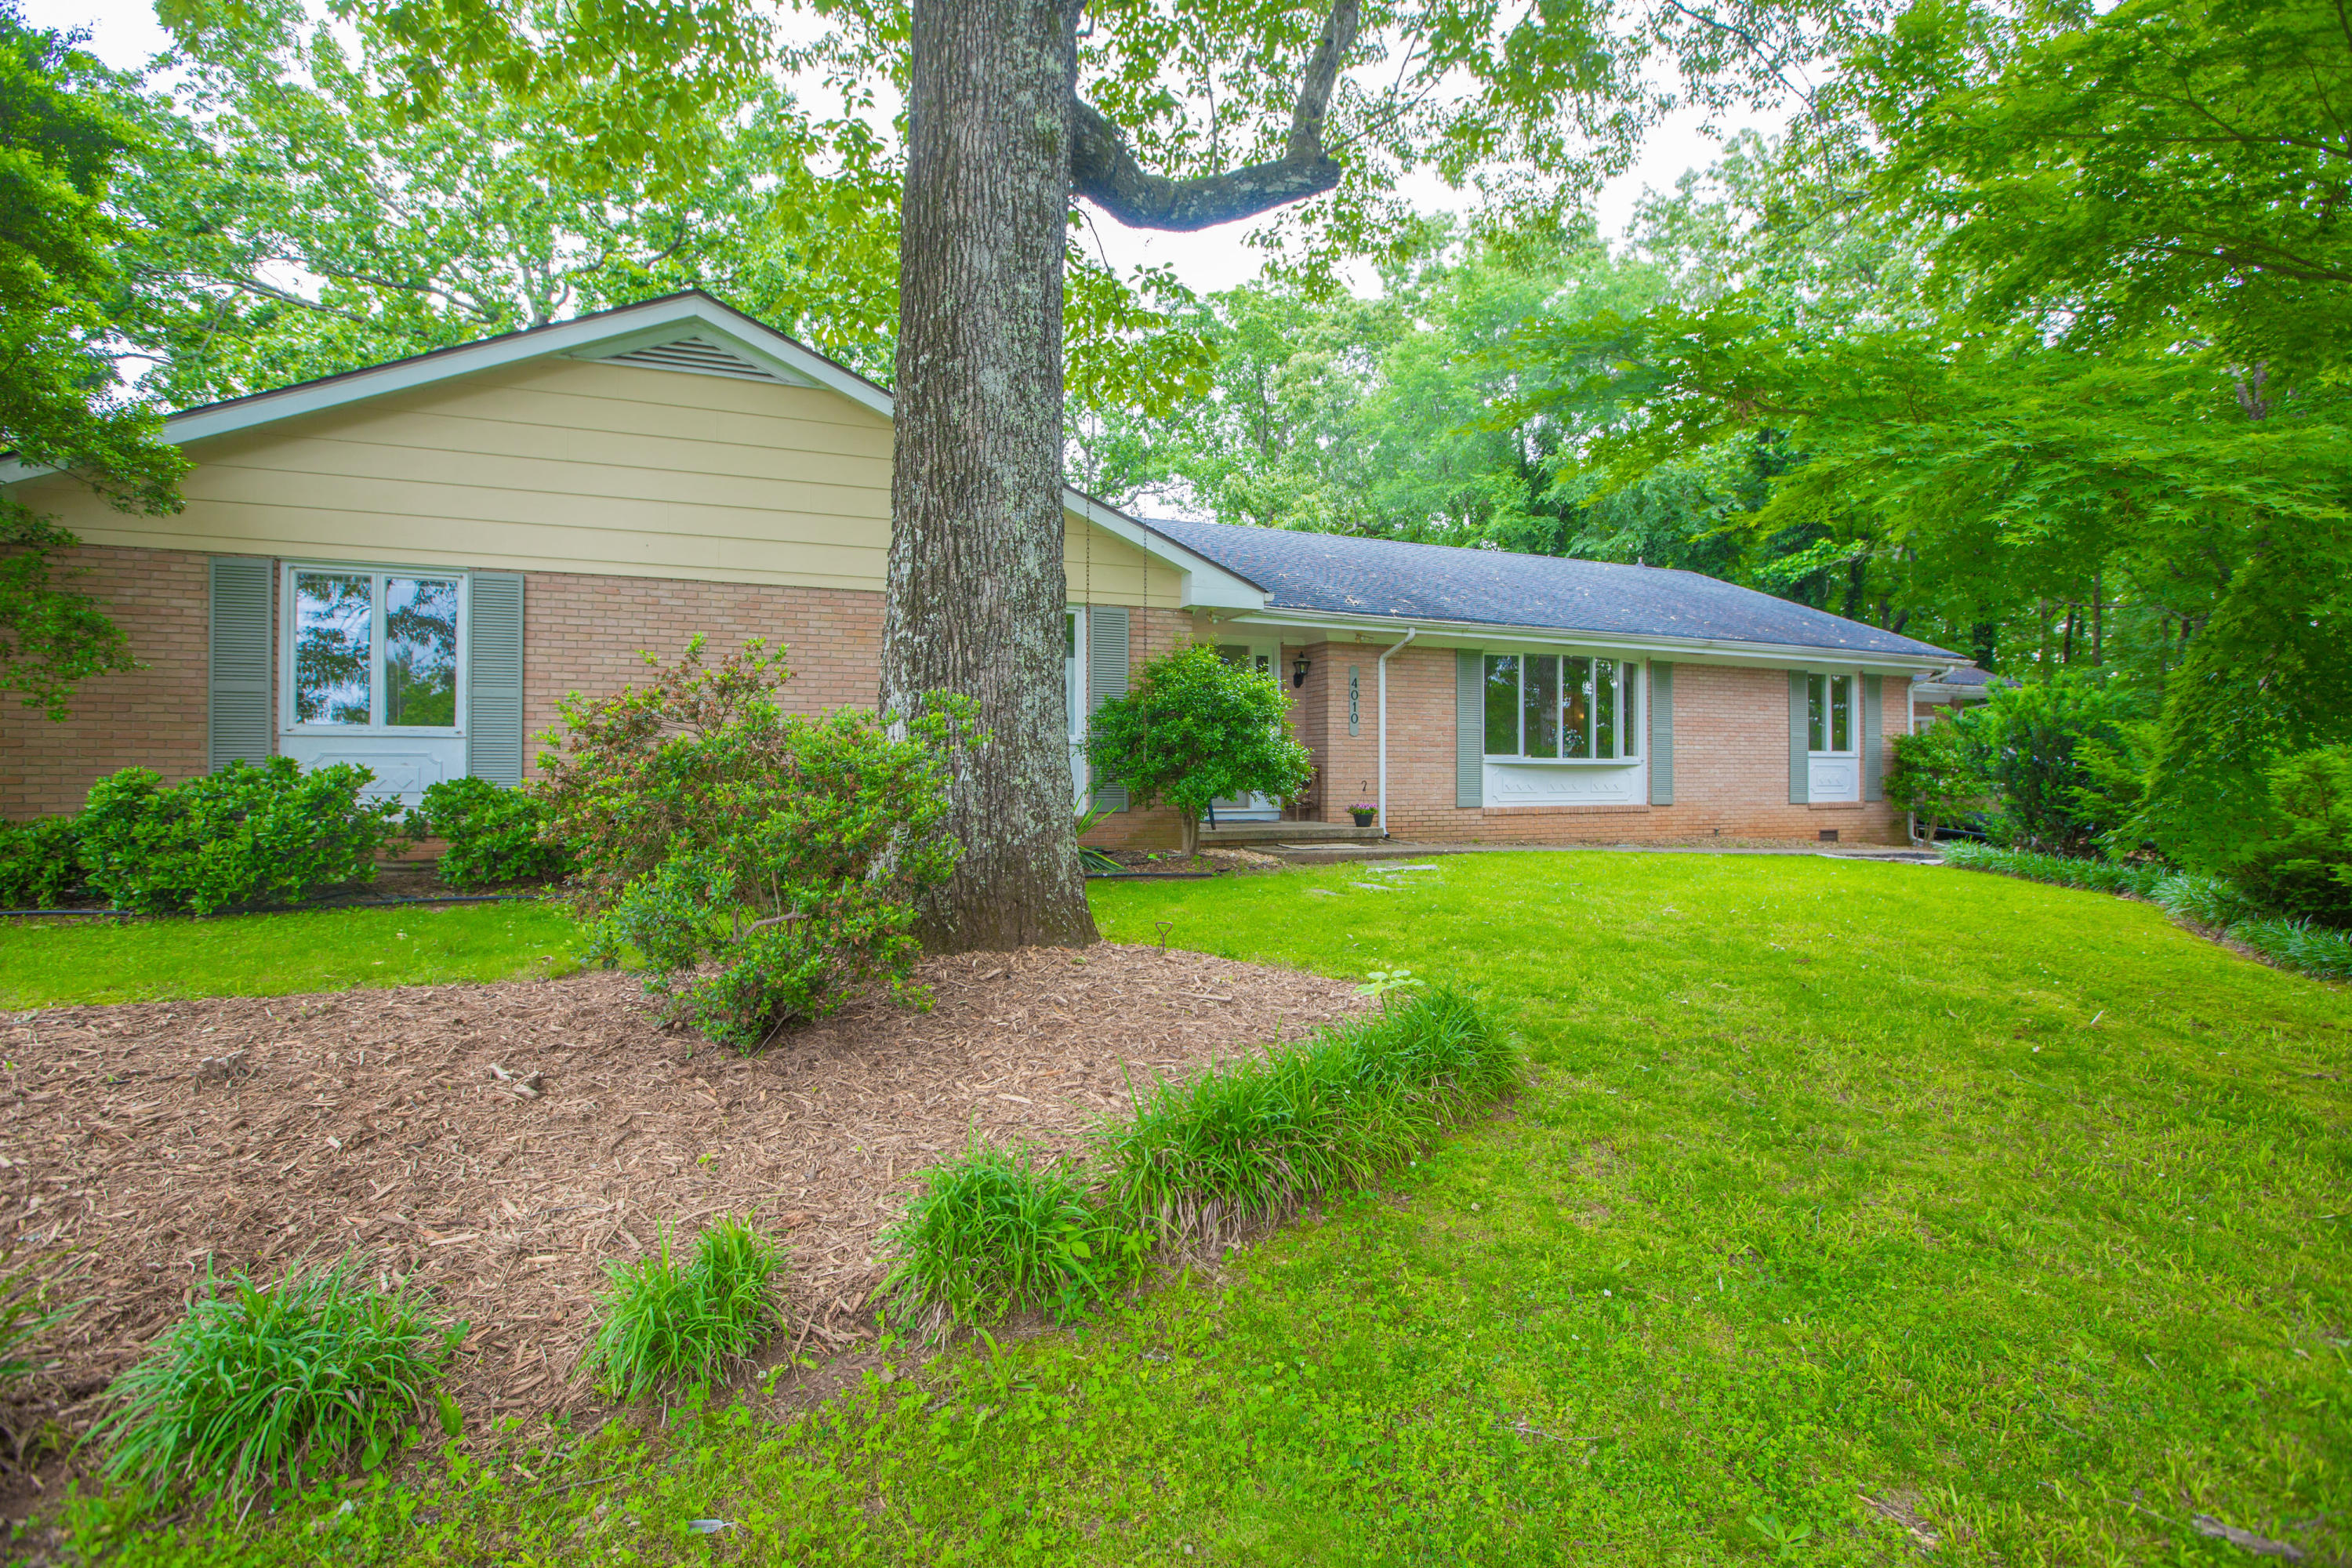 4010 Highwood Dr, Chattanooga, Tennessee